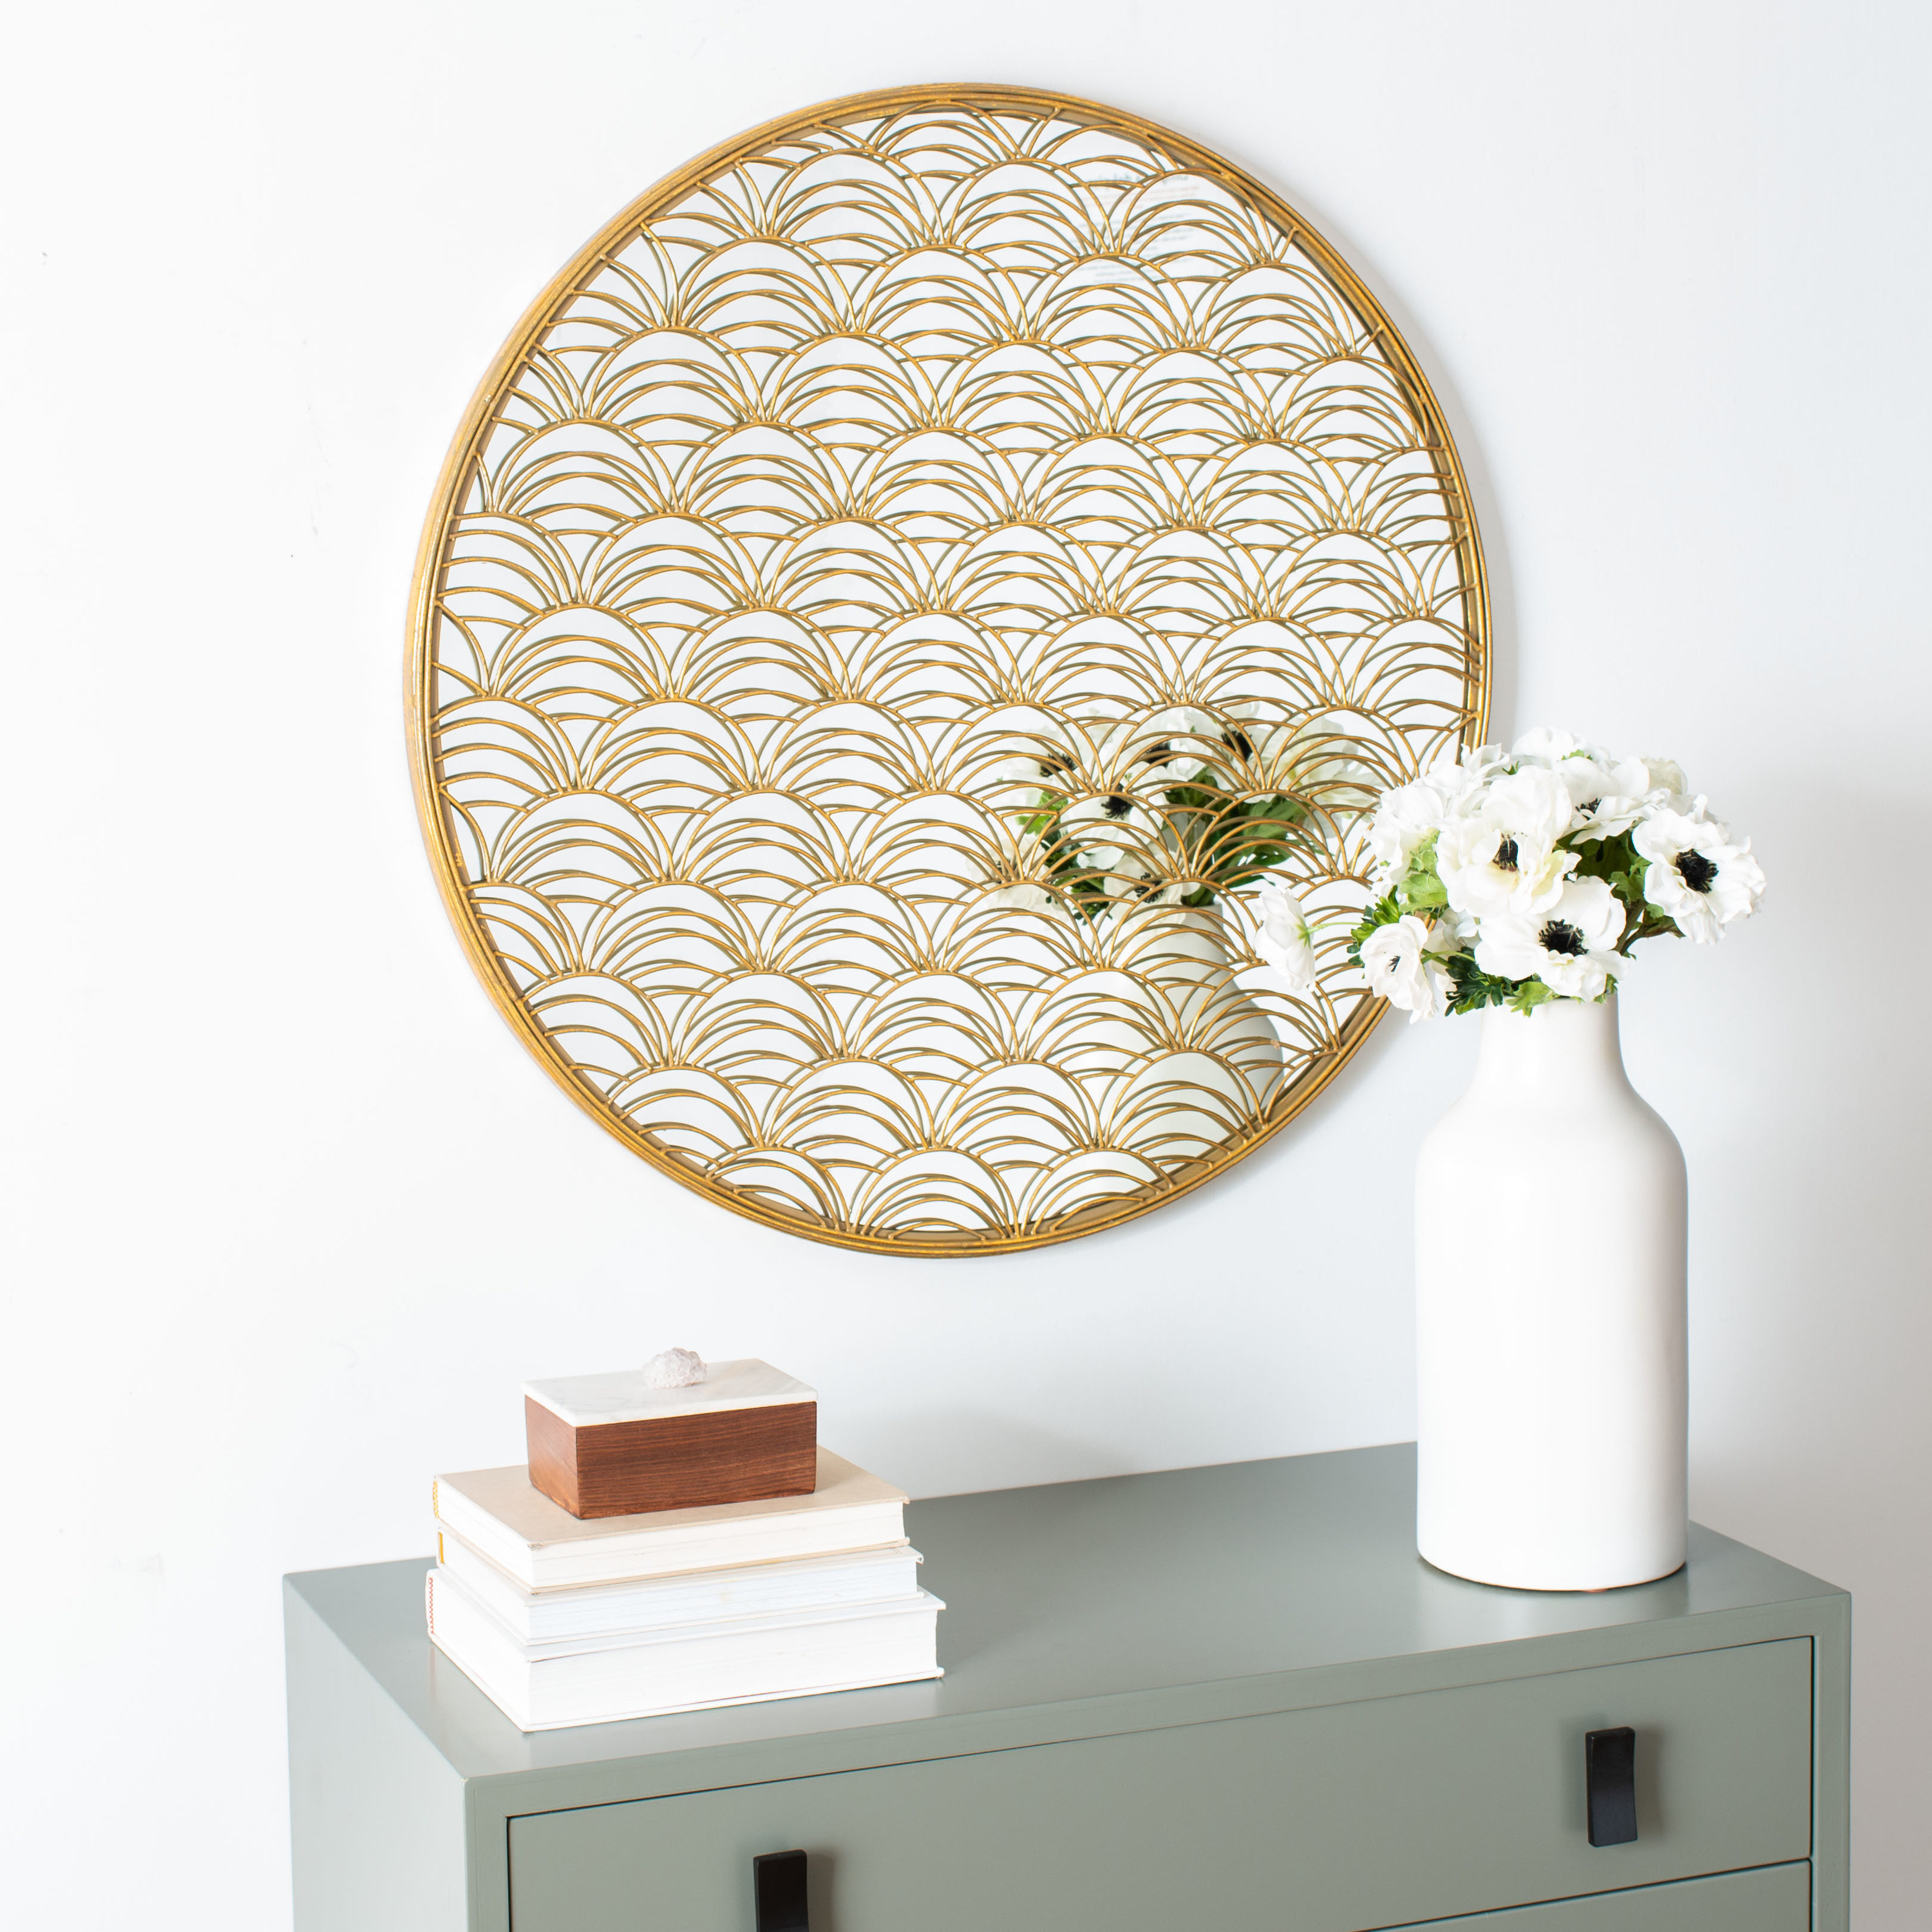 round mirror with a gold foil design hung on a wall over a mint green dresser